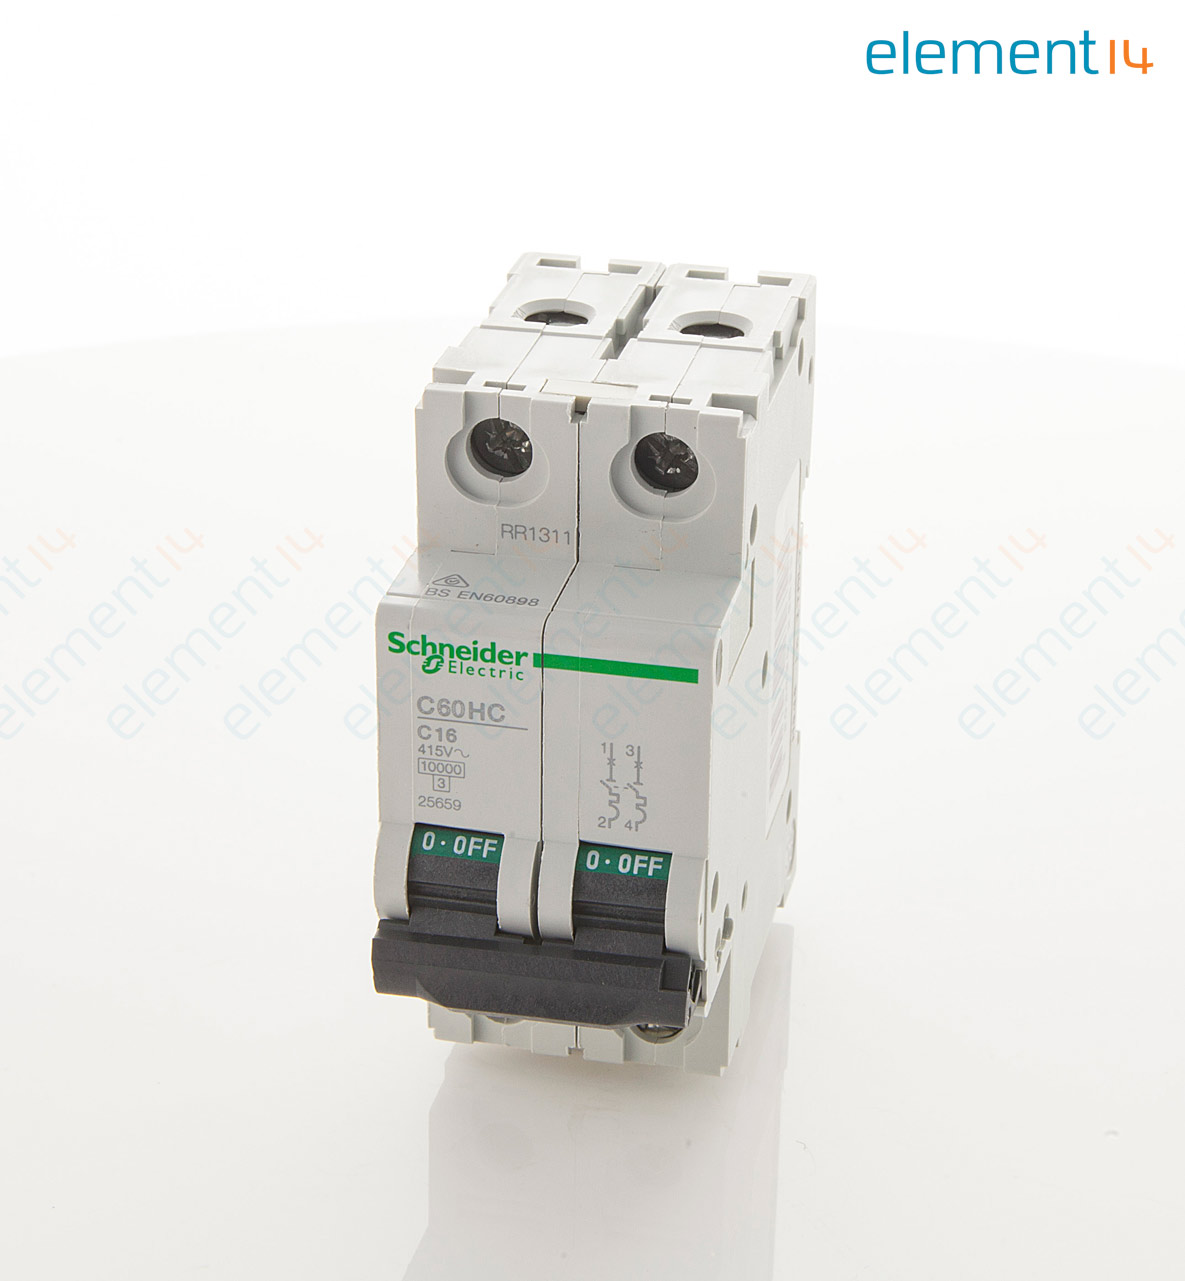 C60hc216 Merlin Gerin Thermal Magnetic Circuit Breaker 16 A 2 Pole Breakers Some Use 415 Vac Din Rail